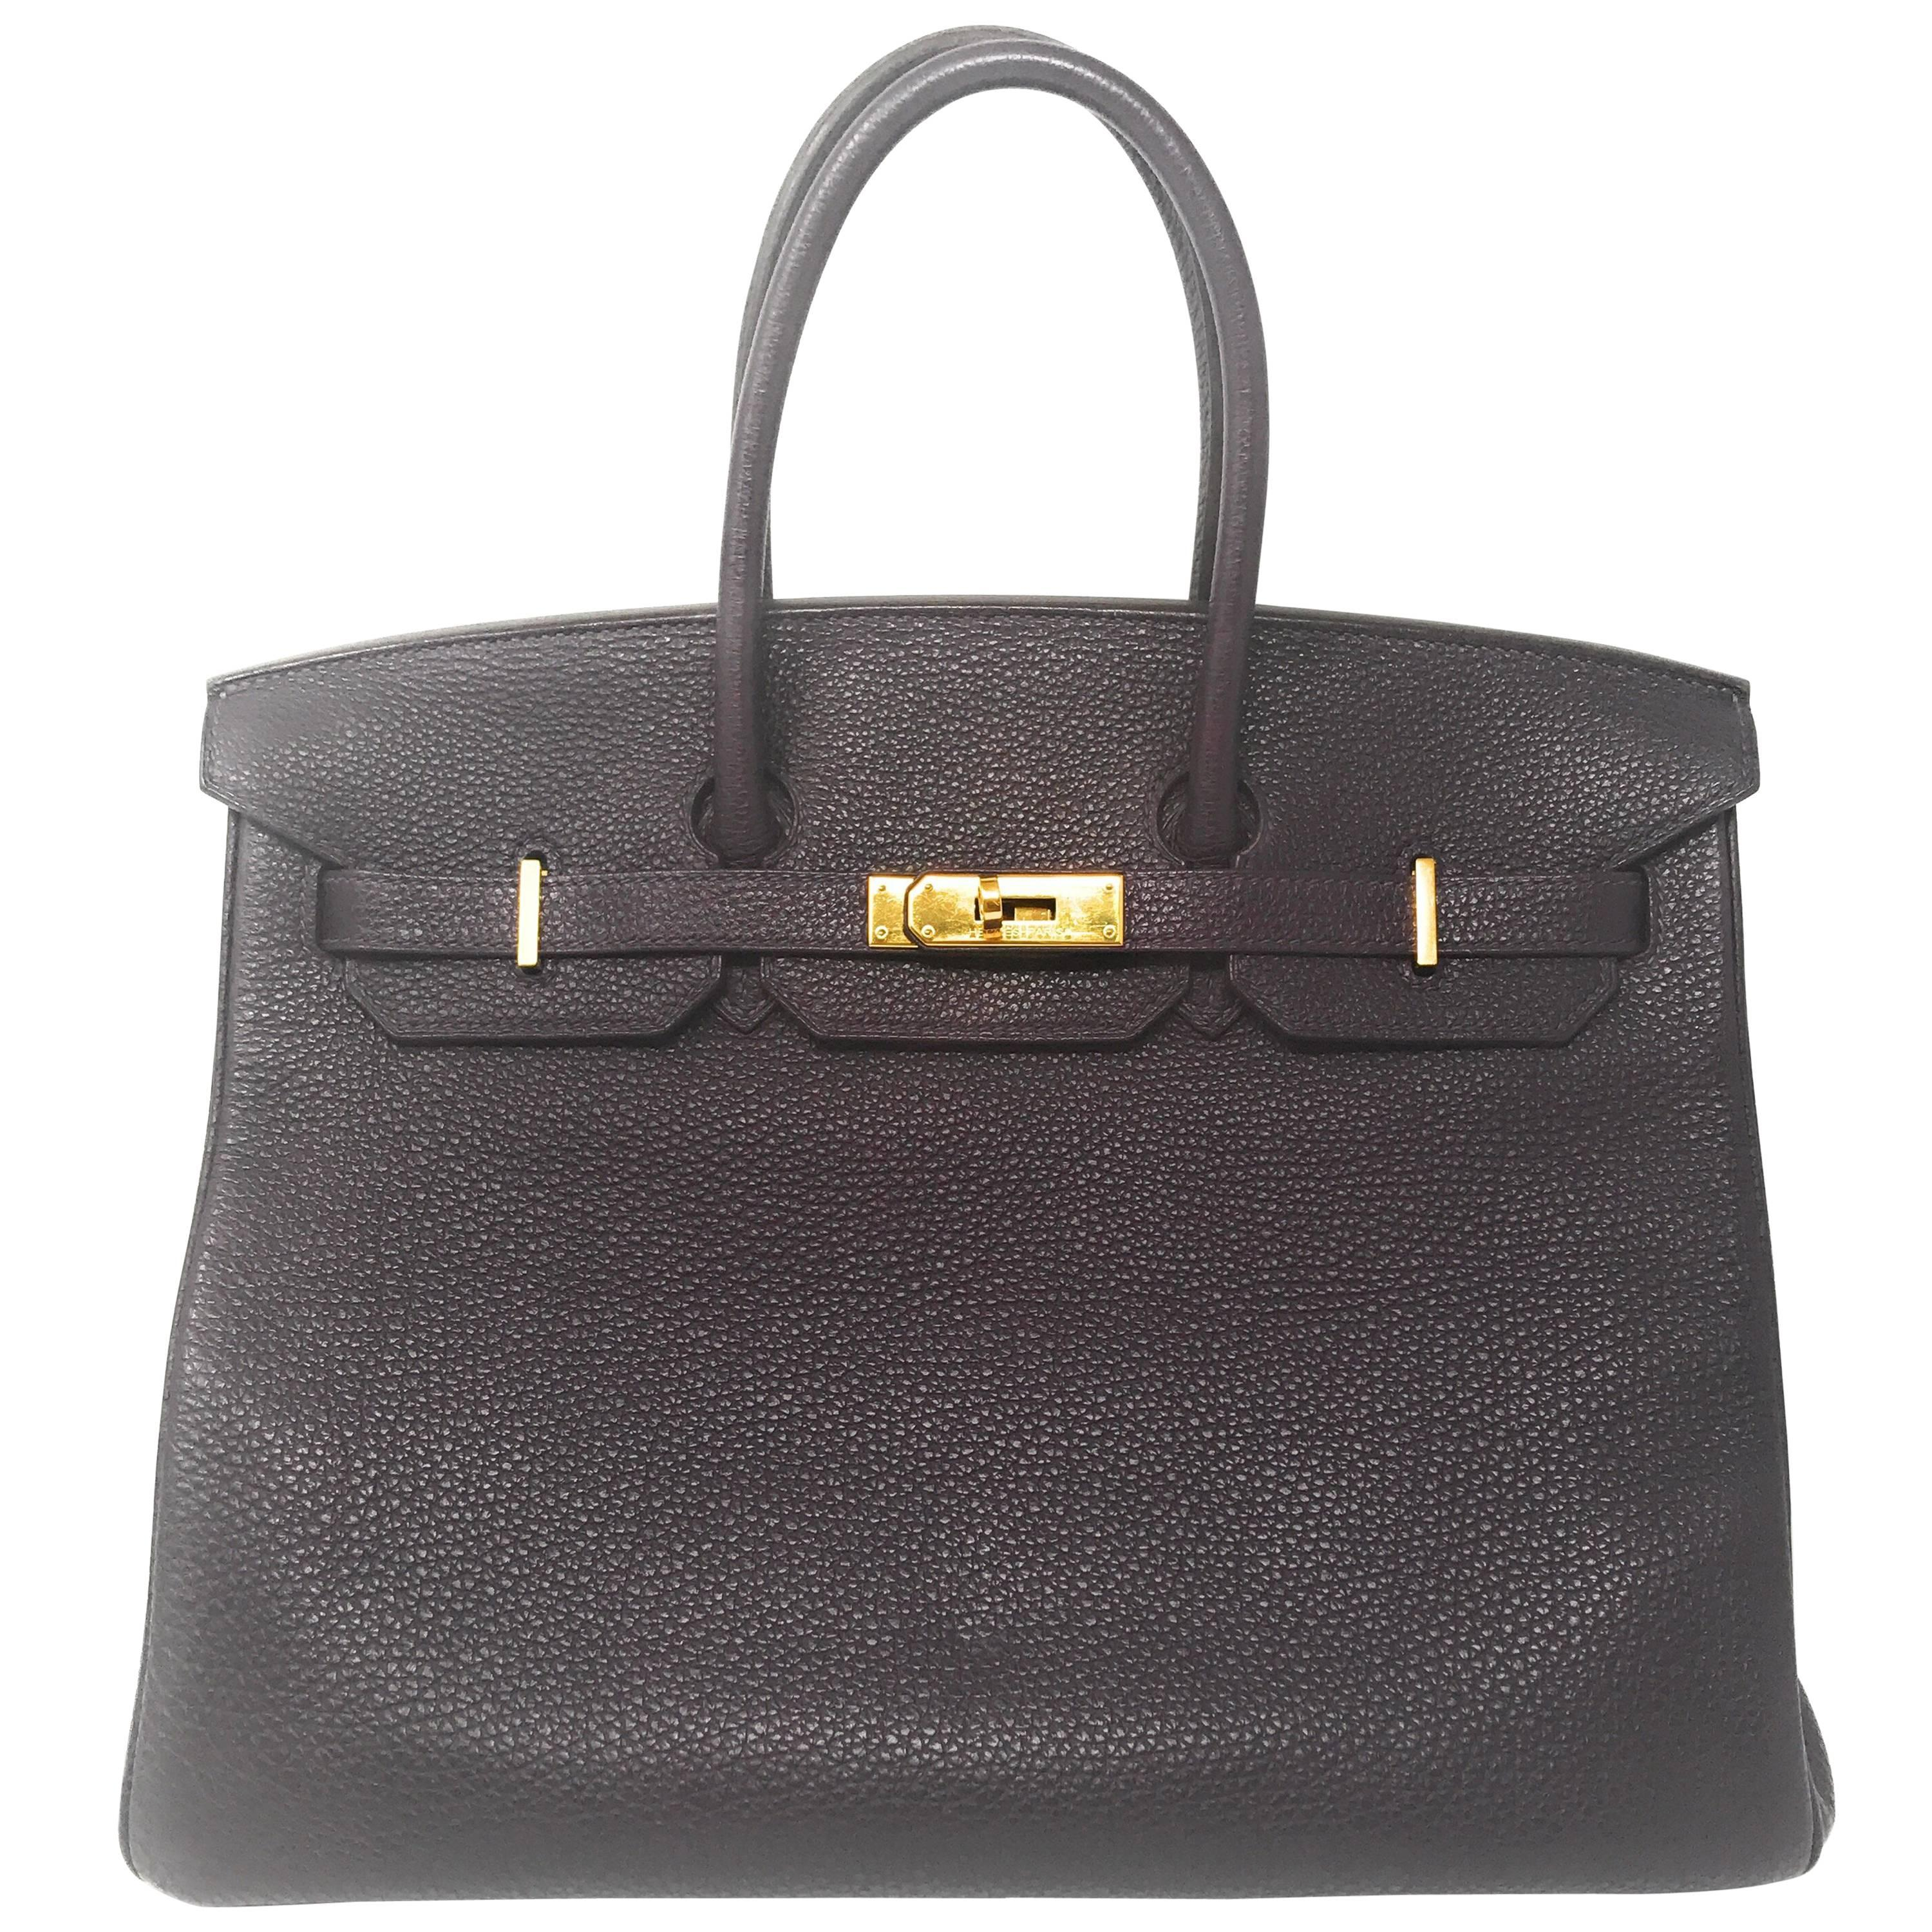 57d94f9c70e4 Hermes Kelly 28 Black Epsom Leather with Gold Hardware For Sale at 1stdibs